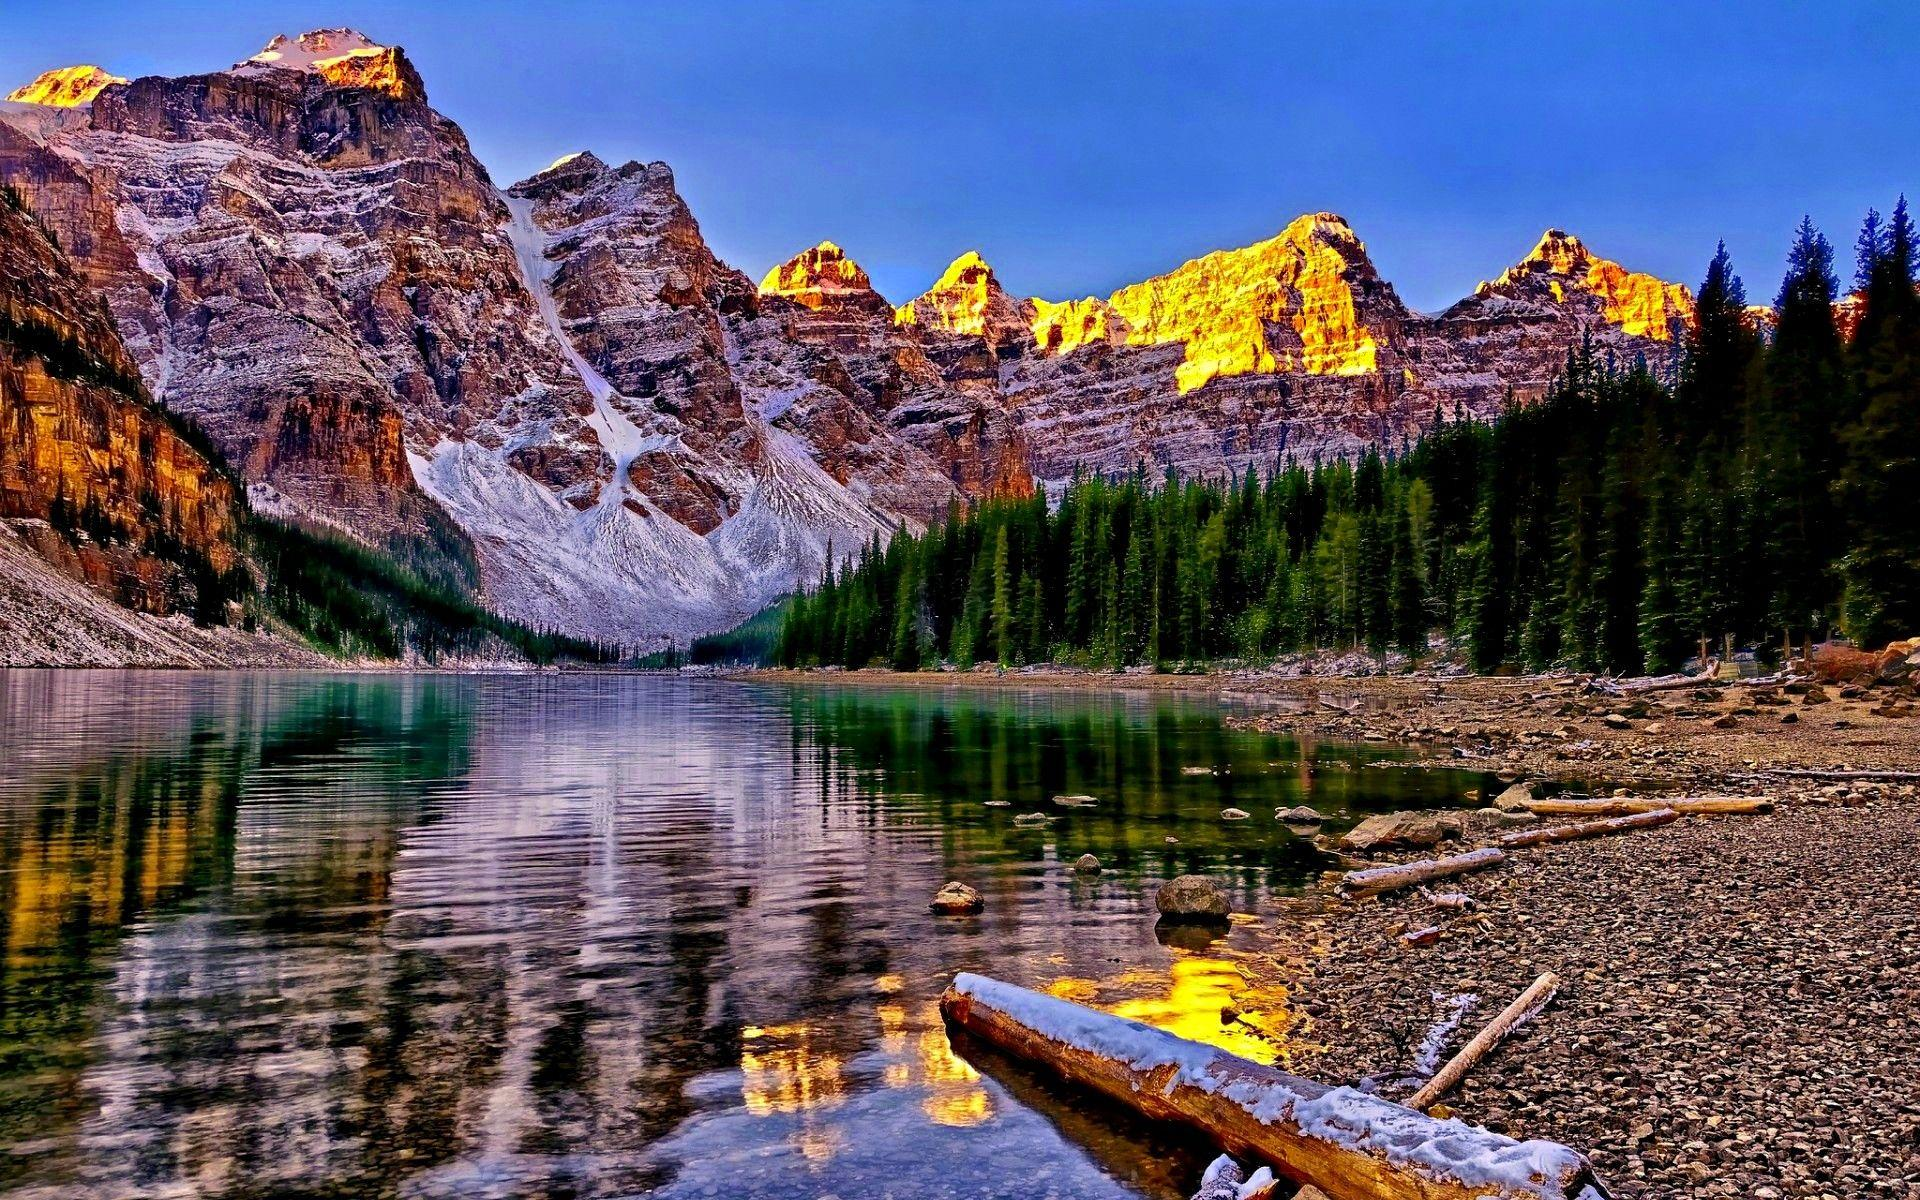 Amusement Parks: BANFF NATIONAL PARK CANADA Scenery Scenic Pakr